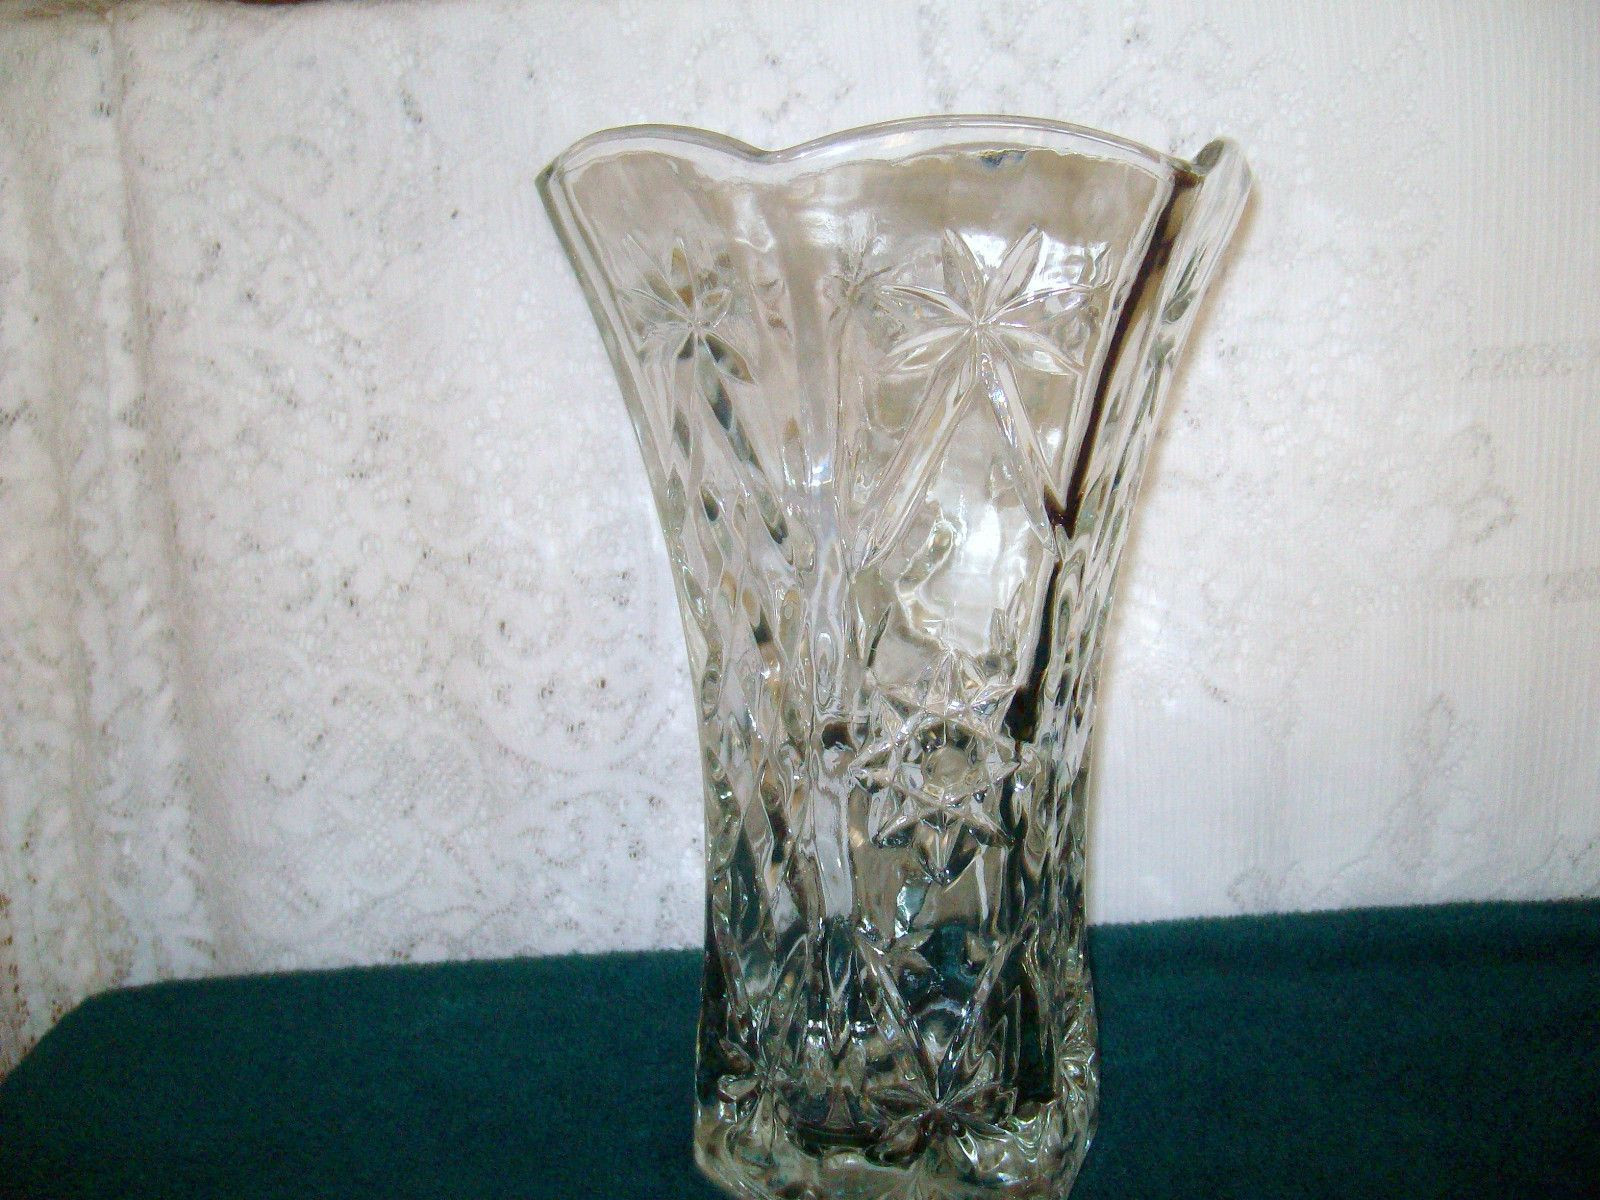 large square clear glass vases of vintage heavy depression cut glass vase 10 1 2 tall ruffled edges within vintage heavy depression cut glass vase 10 1 2 tall ruffled edges